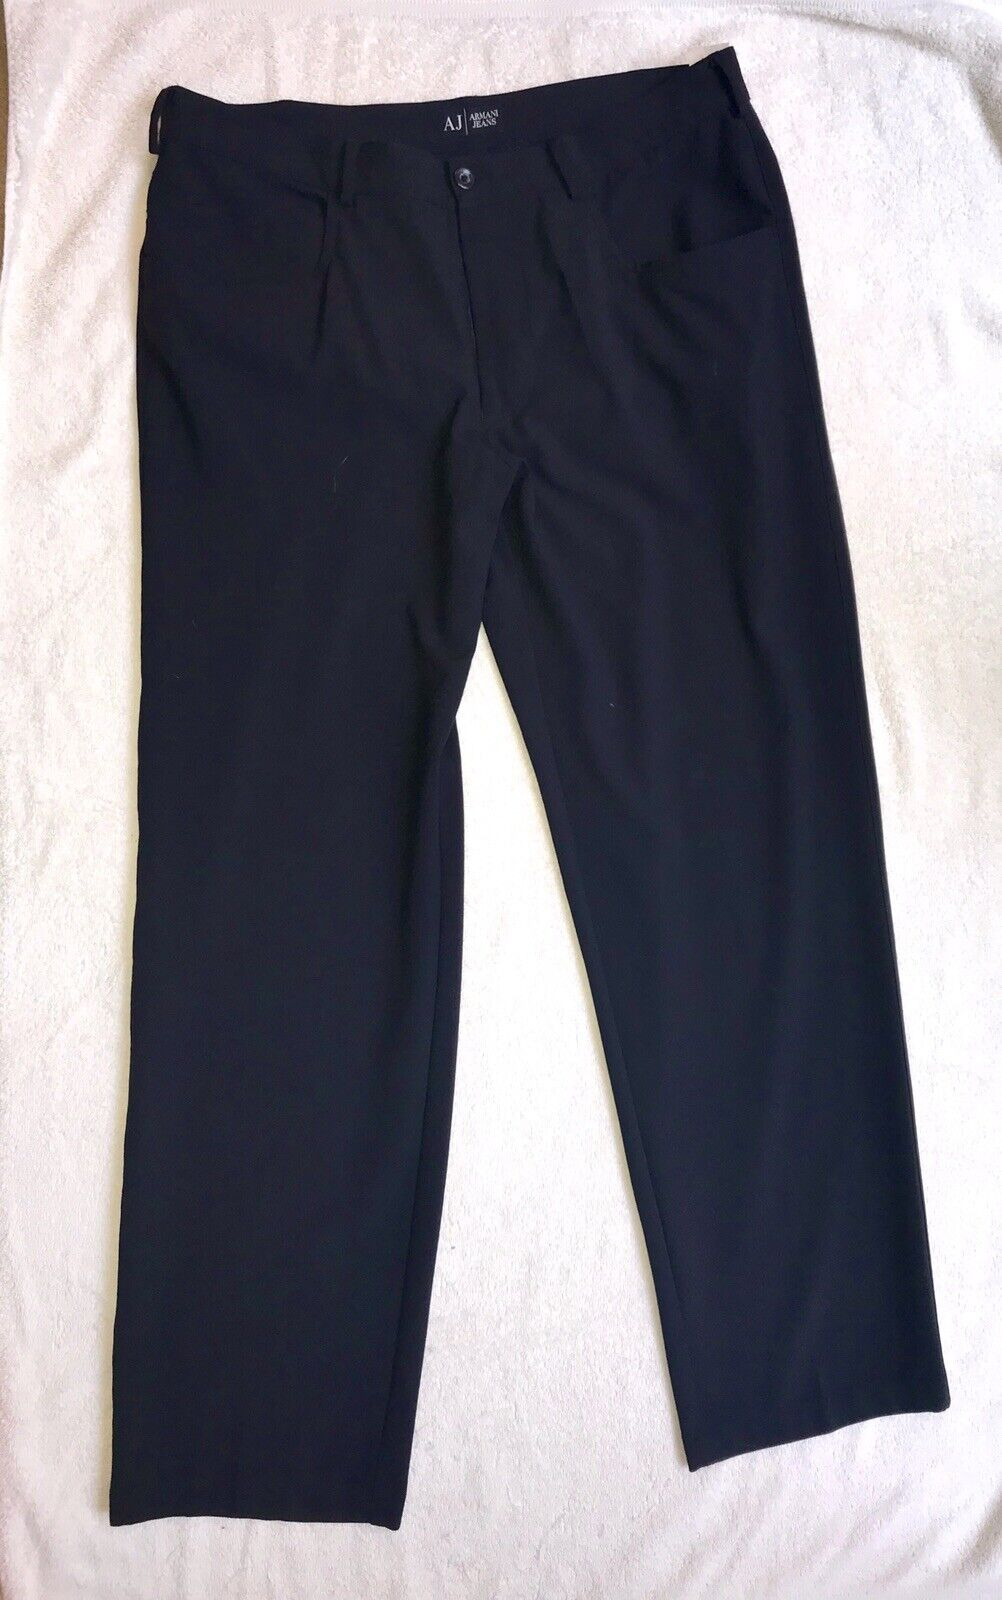 Armani Jeans Mens Trousers Navy - Very Smart Trousers - Hardly Worn